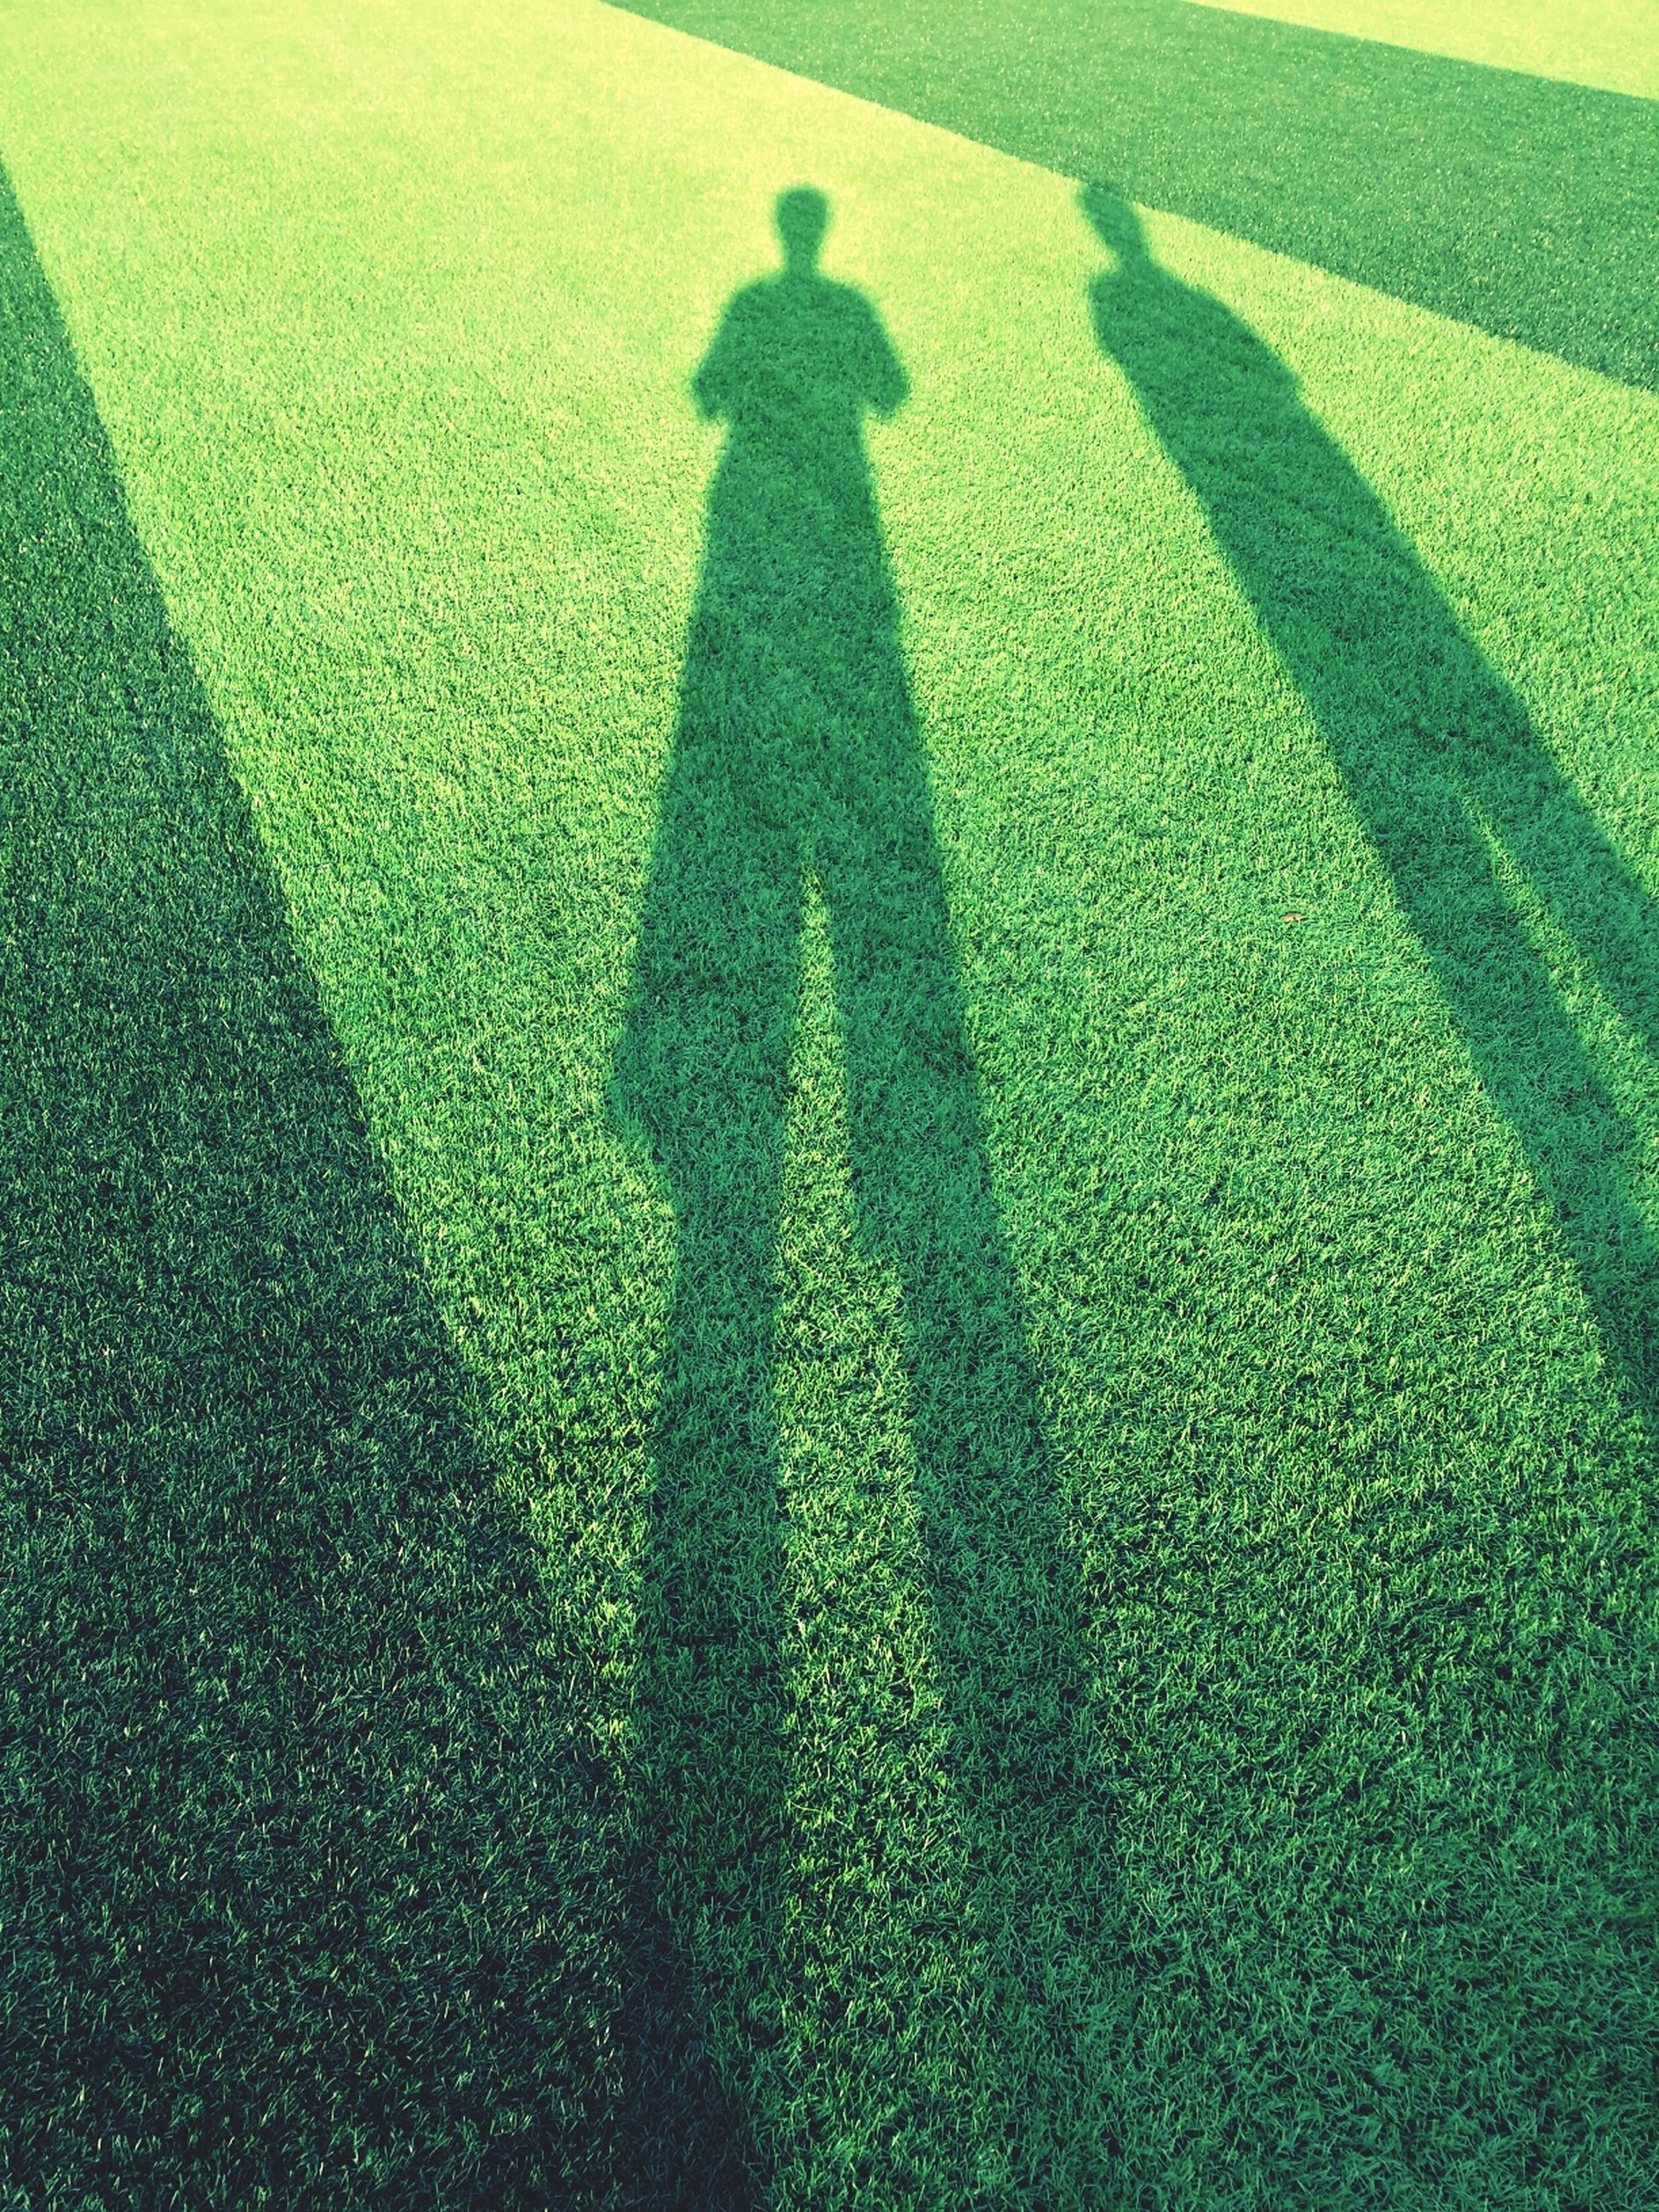 shadow, focus on shadow, high angle view, grass, green color, sunlight, unrecognizable person, field, men, lifestyles, growth, day, grassy, leisure activity, outdoors, low section, nature